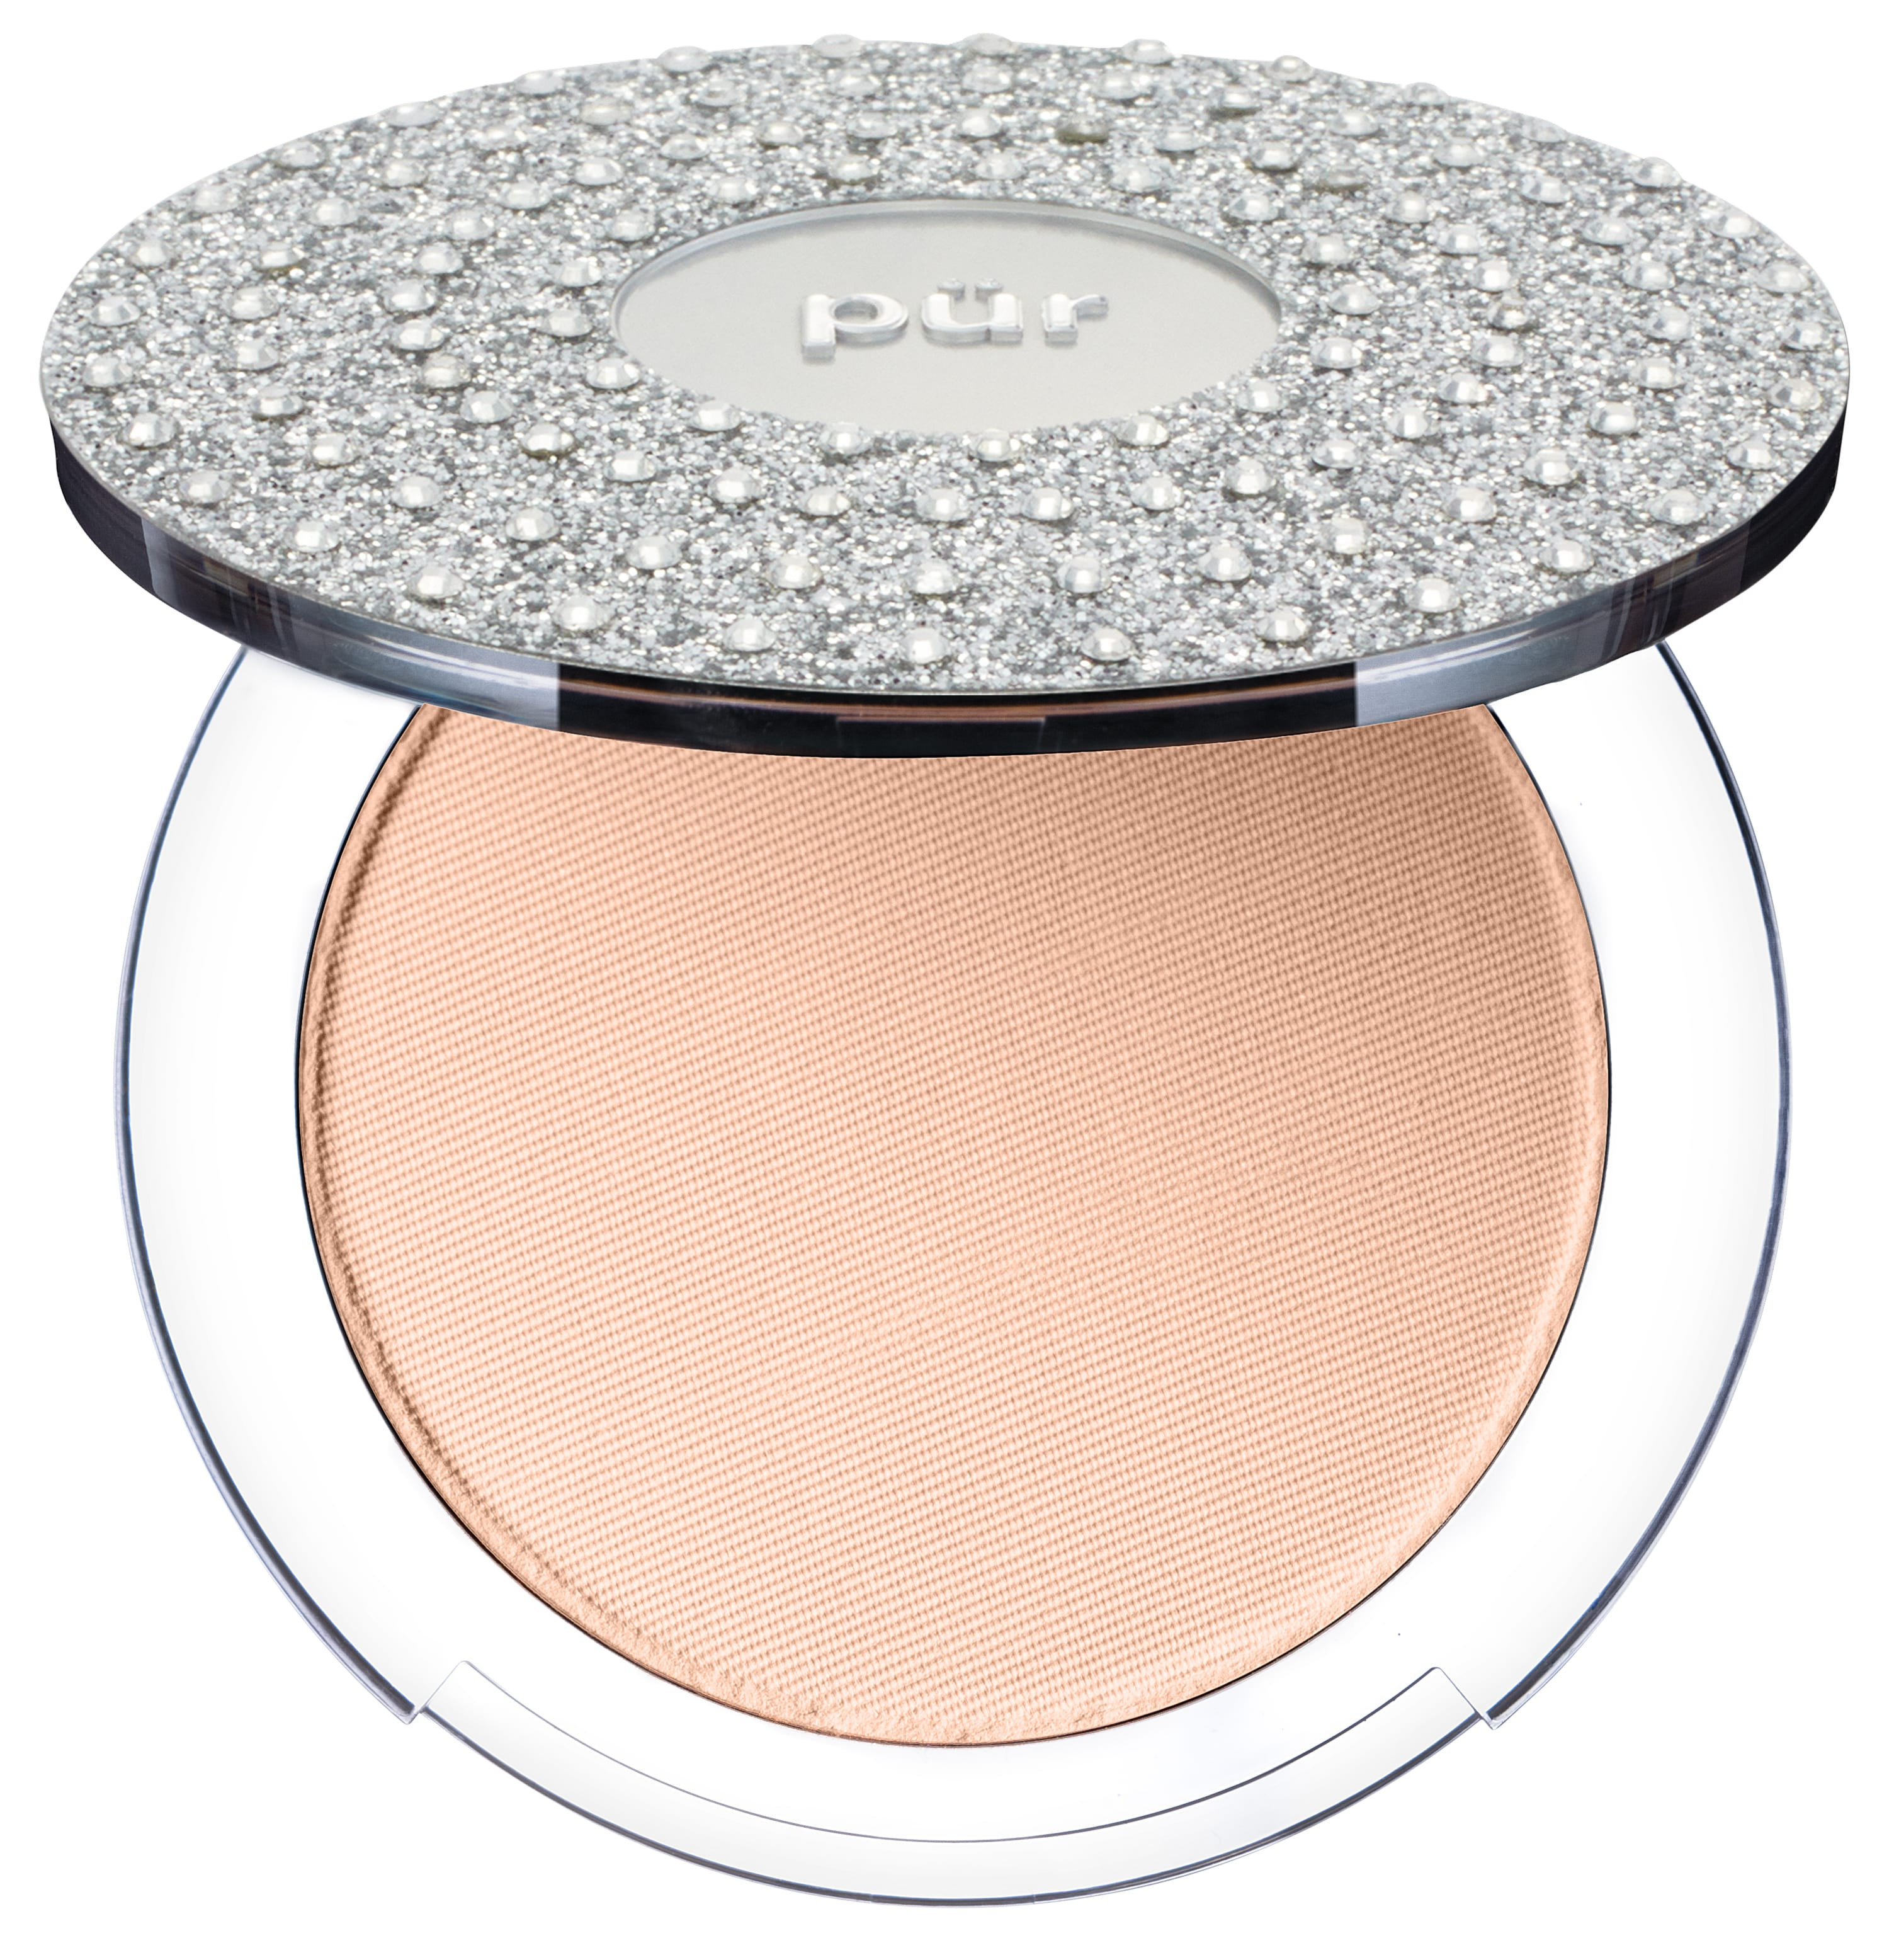 4-in-1 Pressed Mineral Makeup Foundation with Skincare Ingredients Light